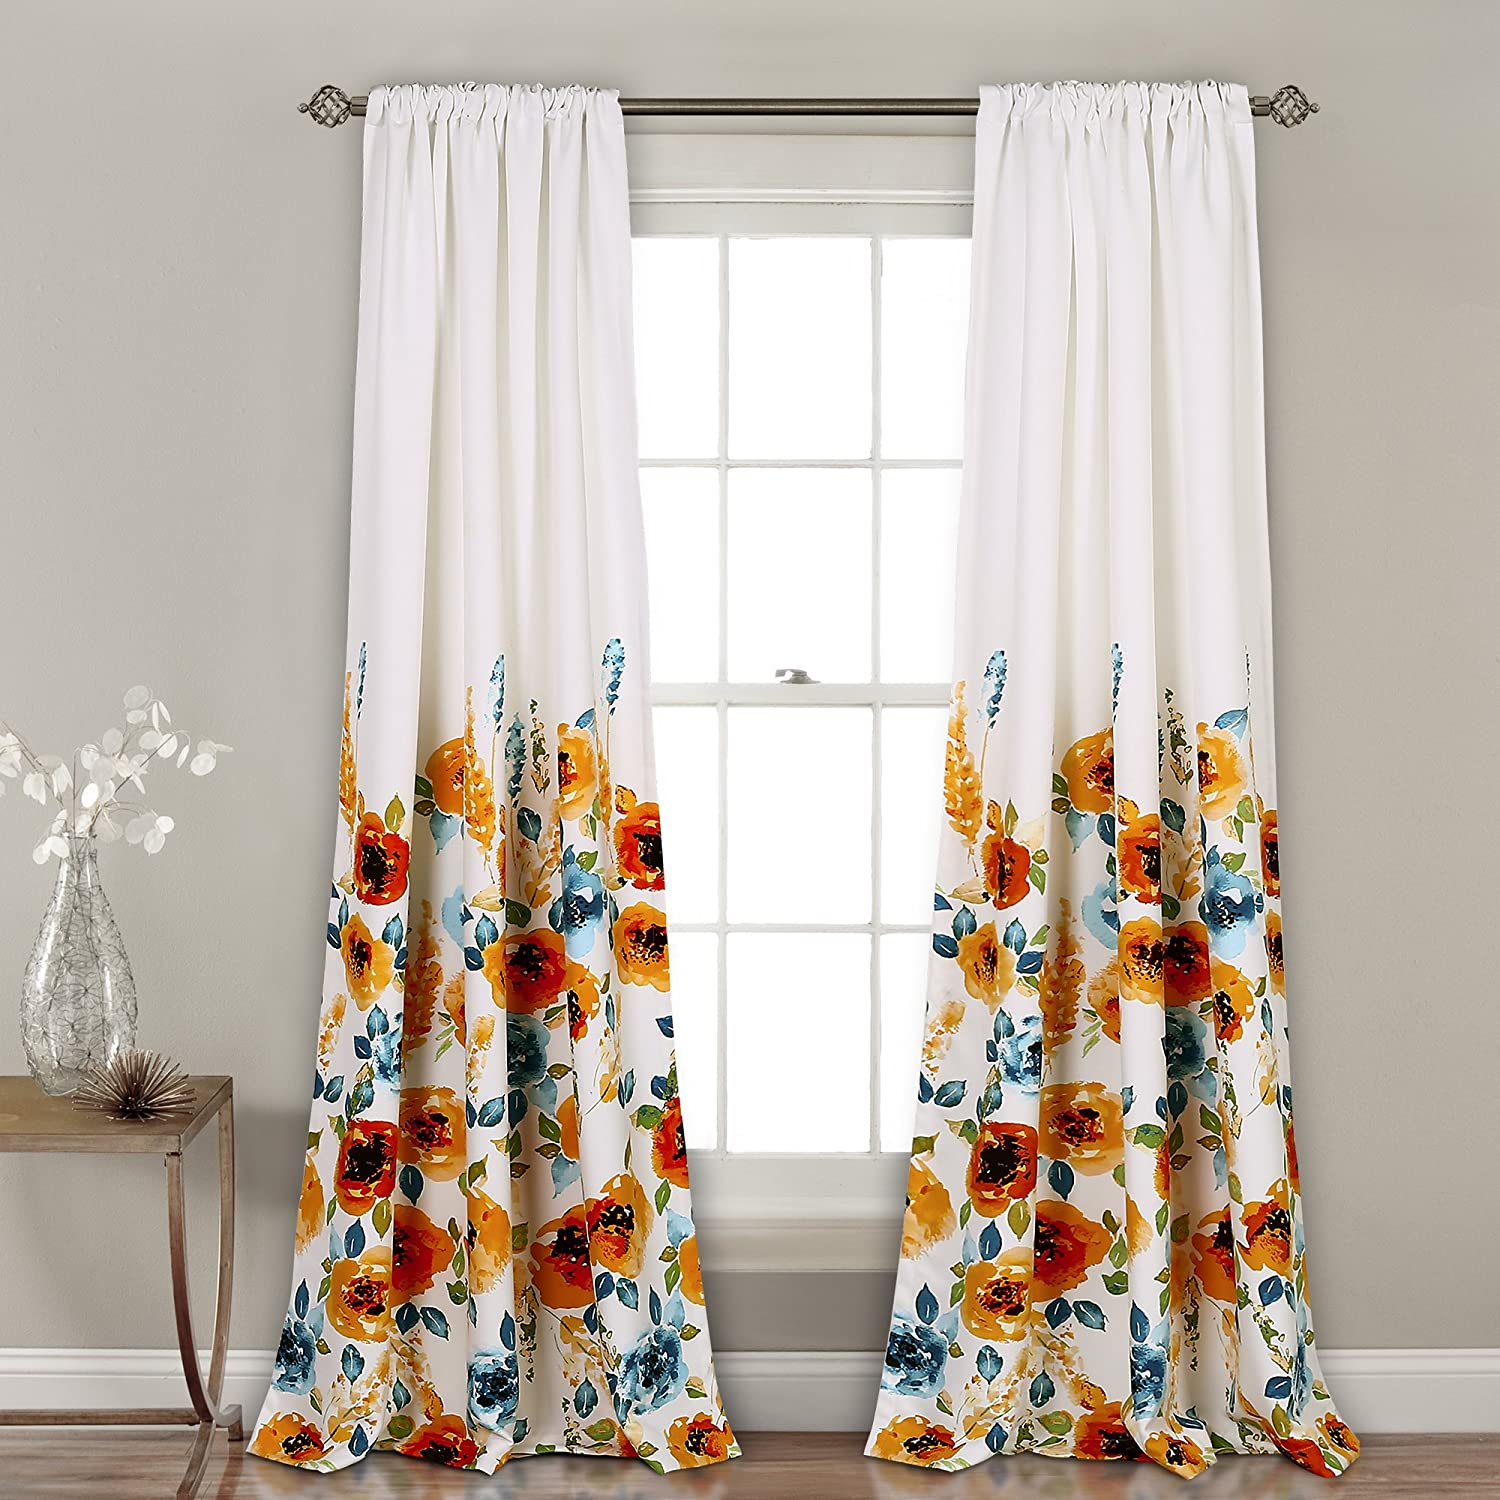 "Lush Decor 16T002249 Percy Bloom Window Curtain Panel Pair, 84"" x 52"", Tangerine & Blue"